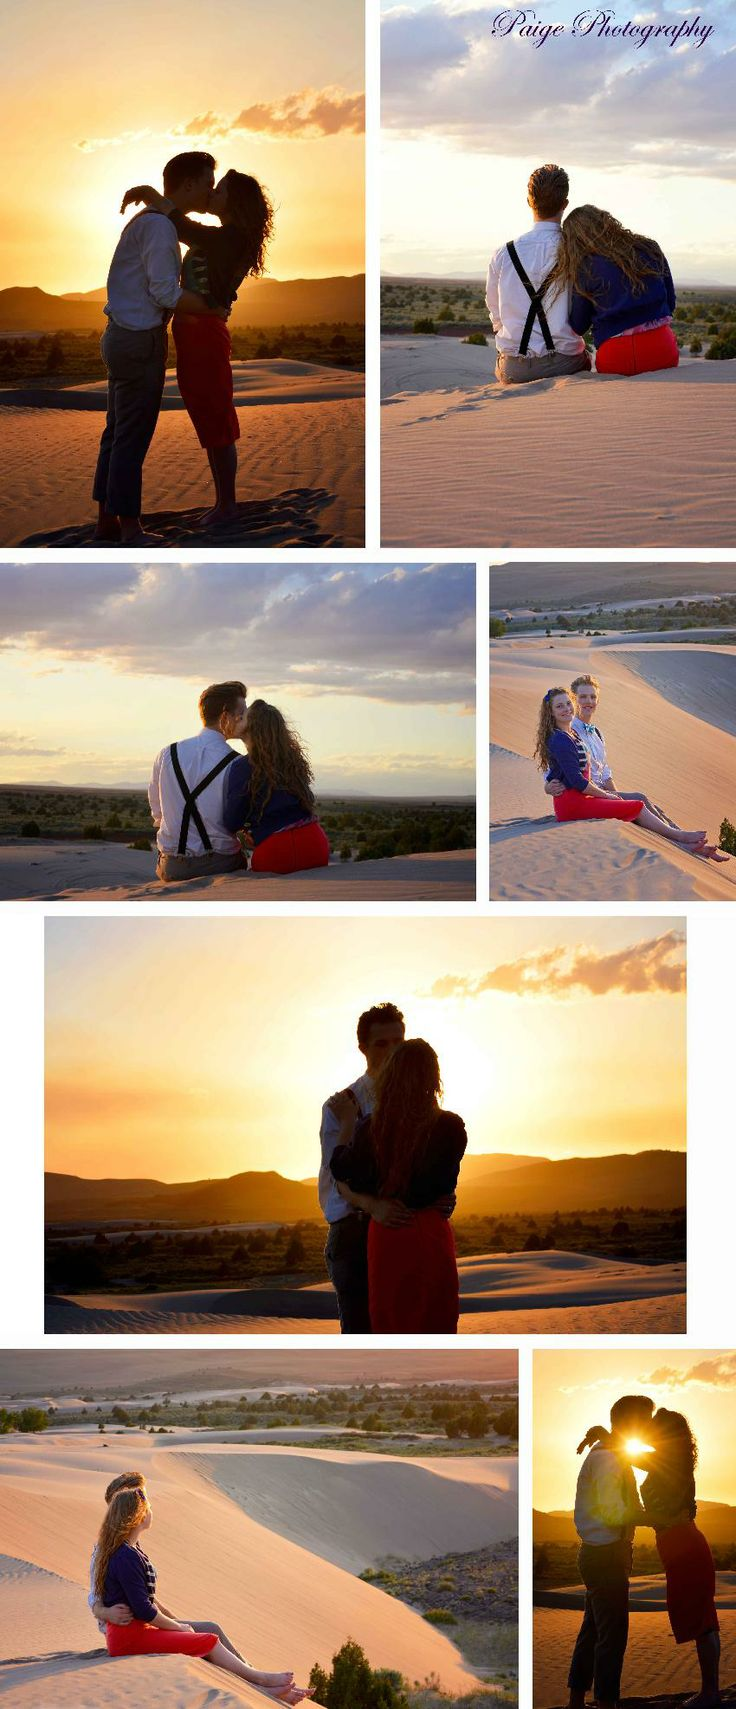 Top left photo Paige Photography | Engagements/Couples | Anniversary Photography | Sand Dune Photography | Anniversary Photo-shoot | Engagement Photography | Engagement Pictures